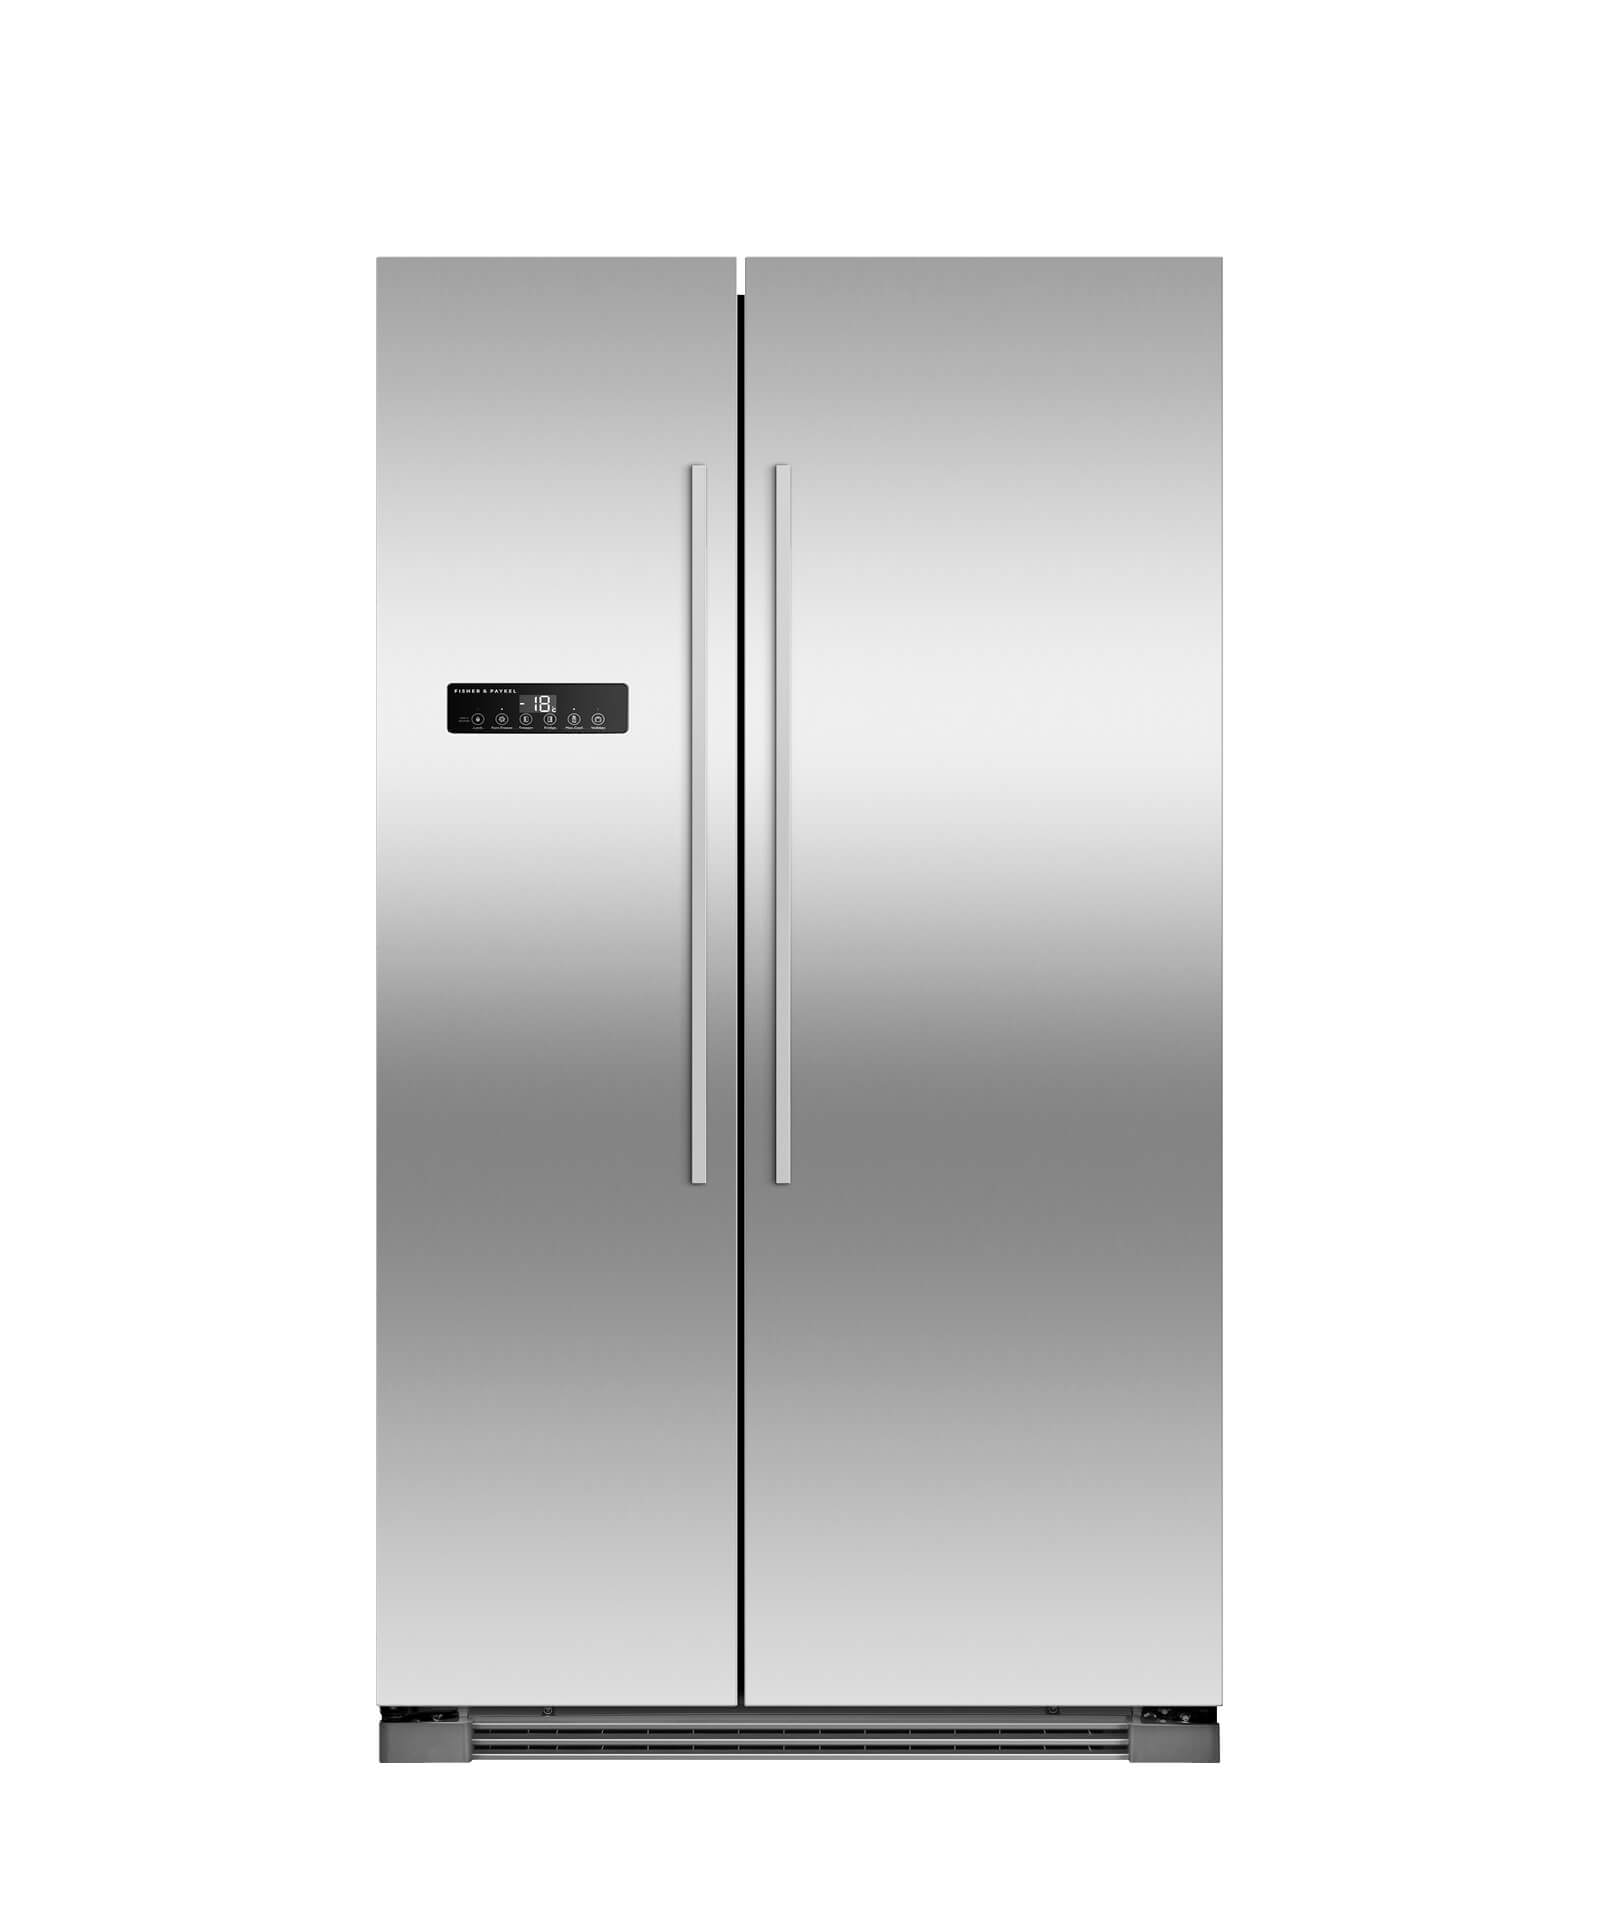 RX628DX1 - Side by Side Fridge - 910mm 628L - 24938  sc 1 st  Fisher \u0026 Paykel Appliances & RX628DX1 - 910mm - 628 litre capacity